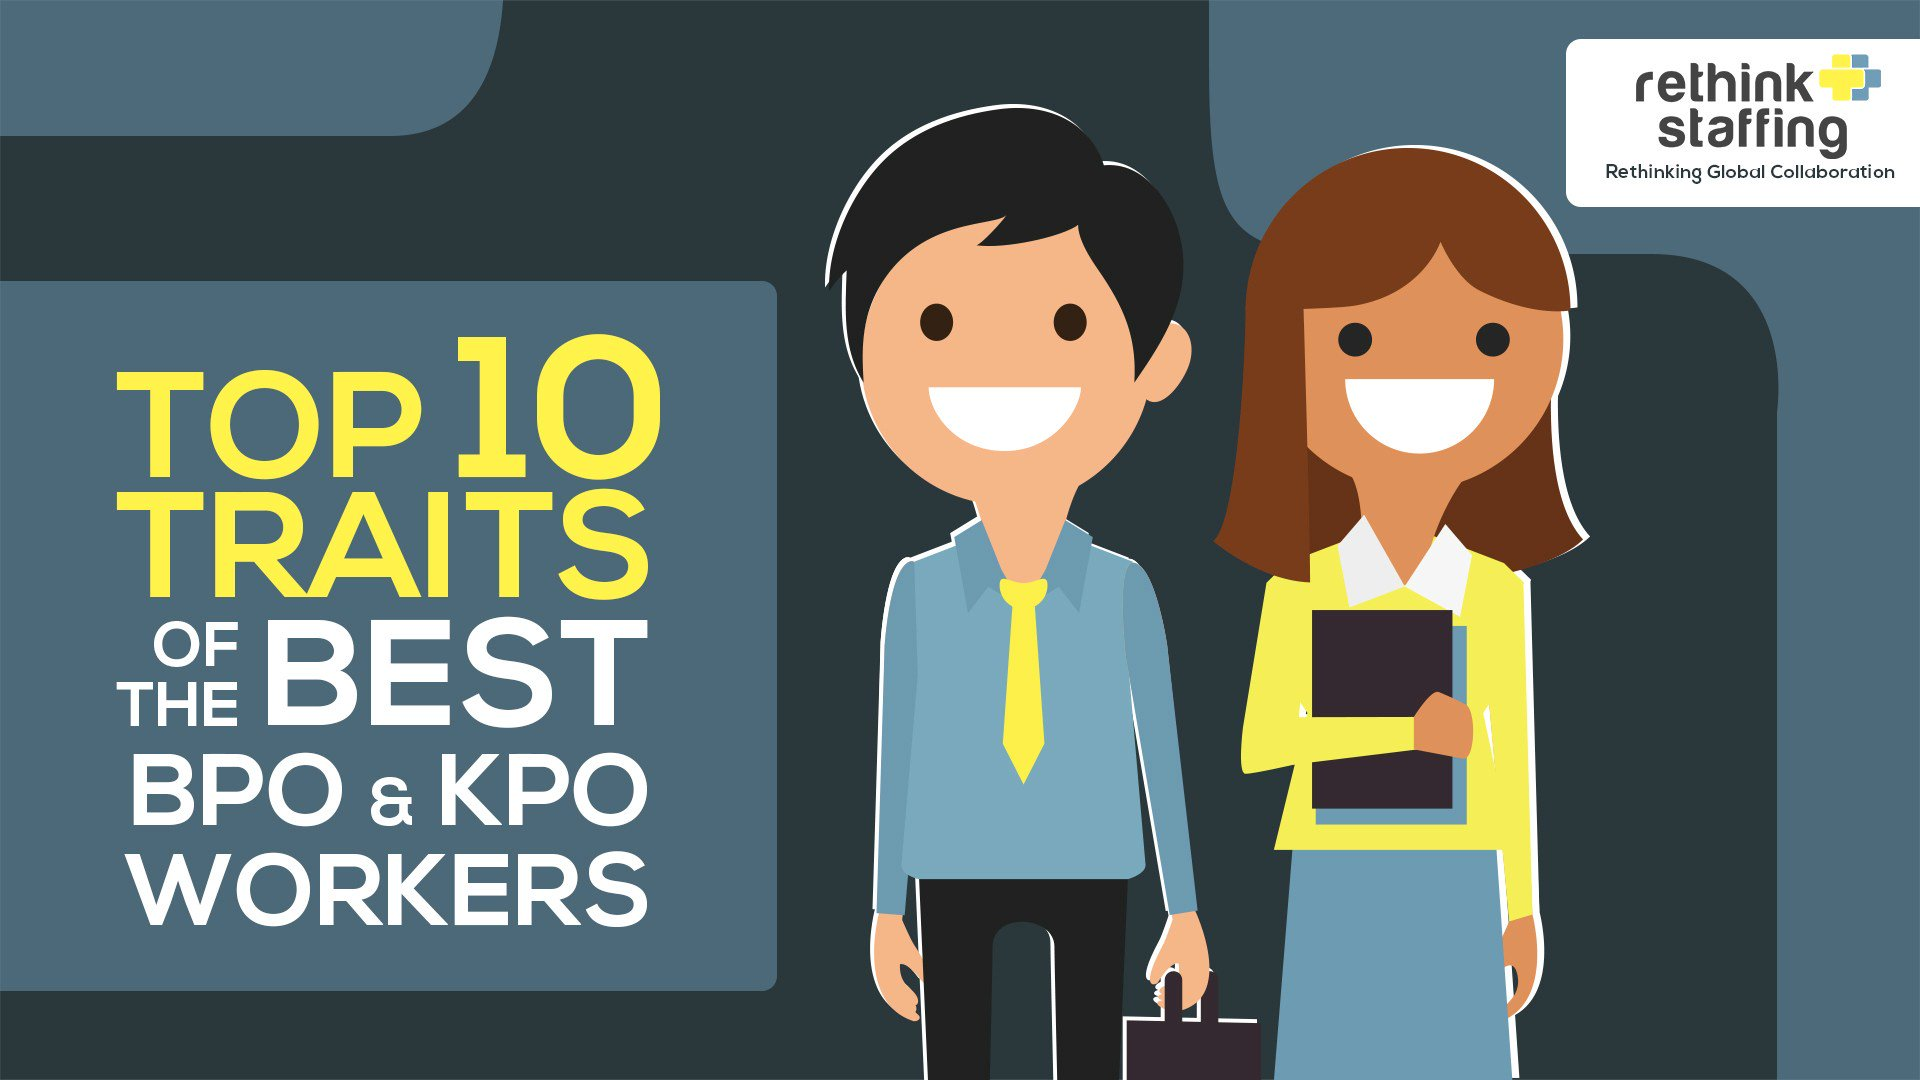 Top 10 Traits of the Best BPO and KPO Workers